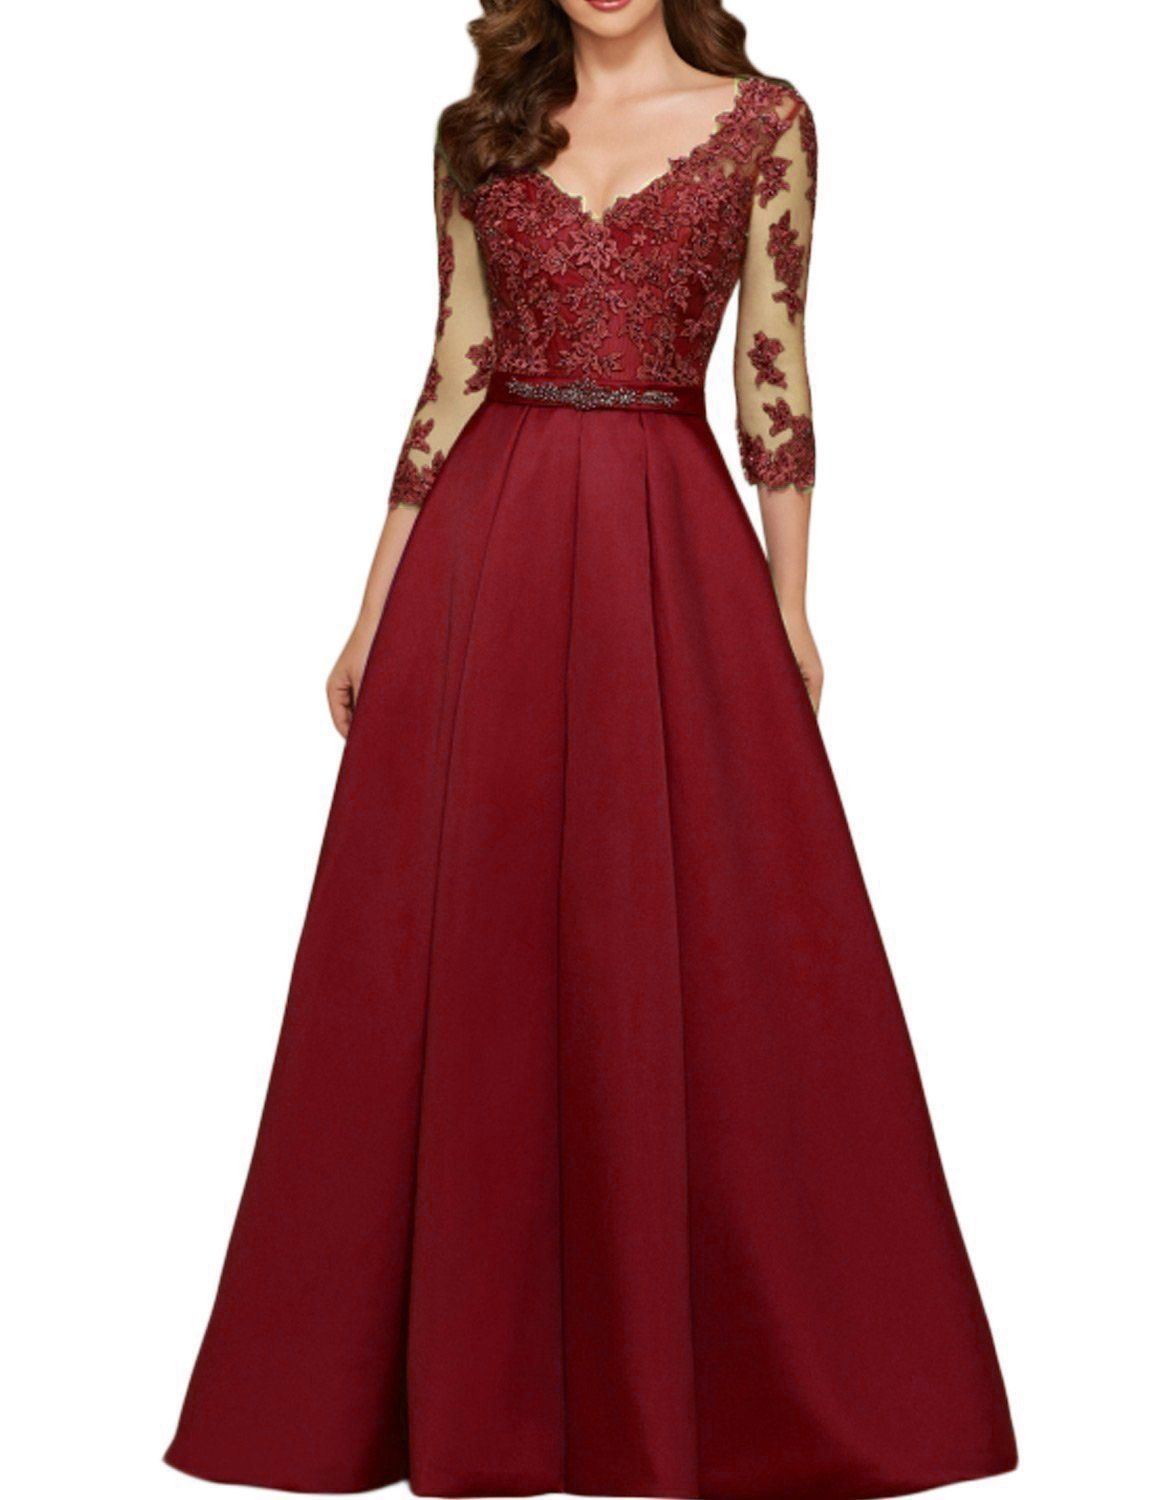 7462861adc4f 34 Of The Best Formal Dresses You Can Get On Amazon